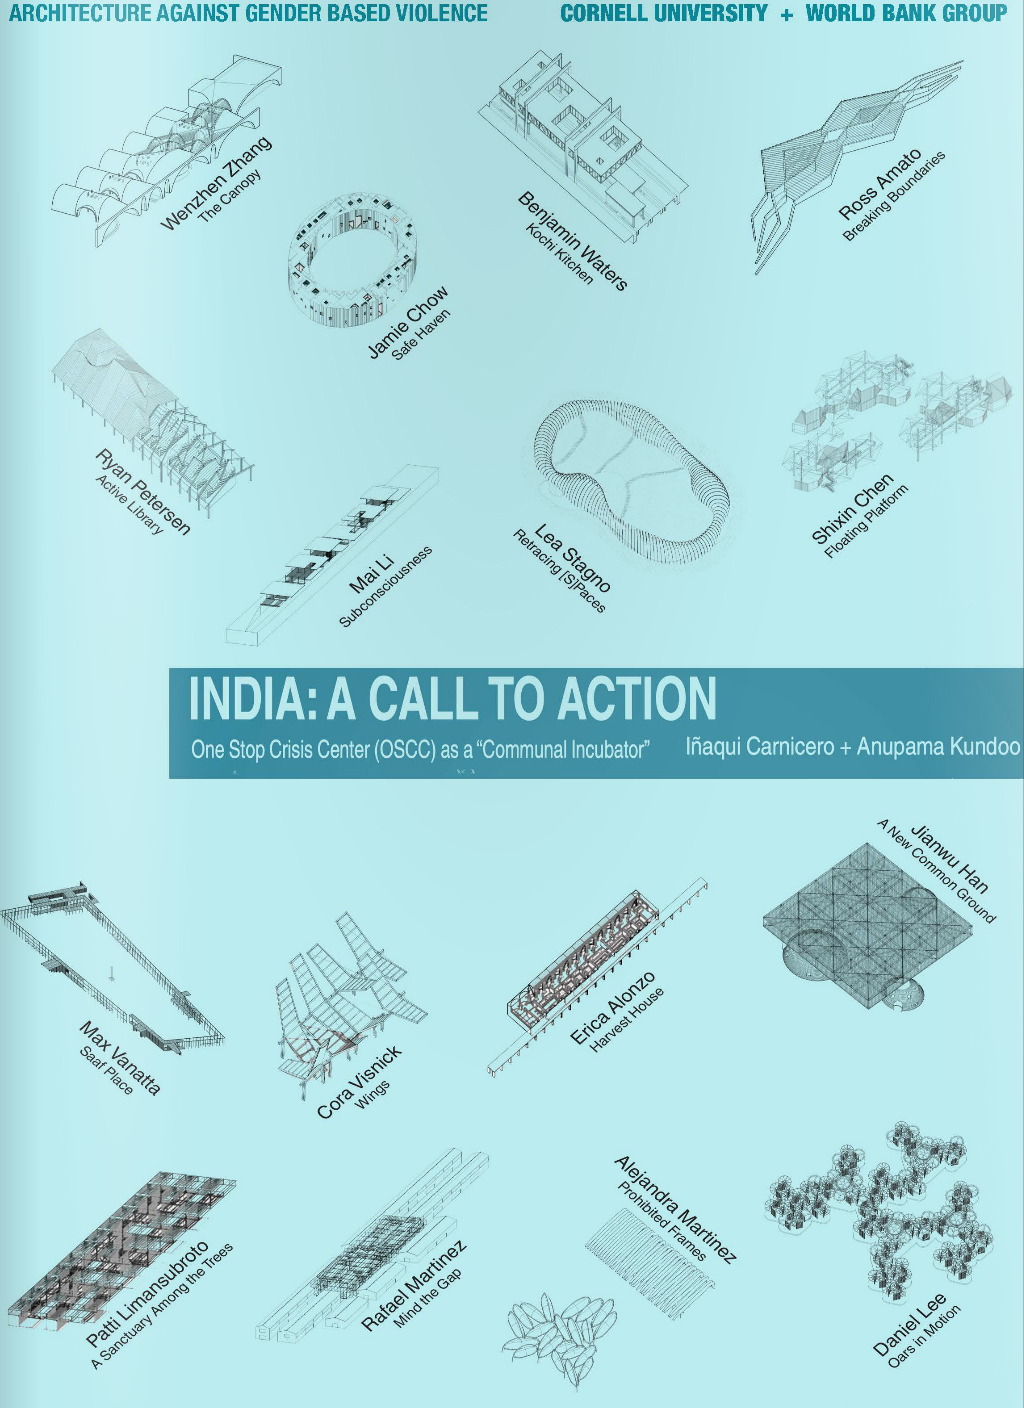 India: A call to action. Option Studio Cornell University